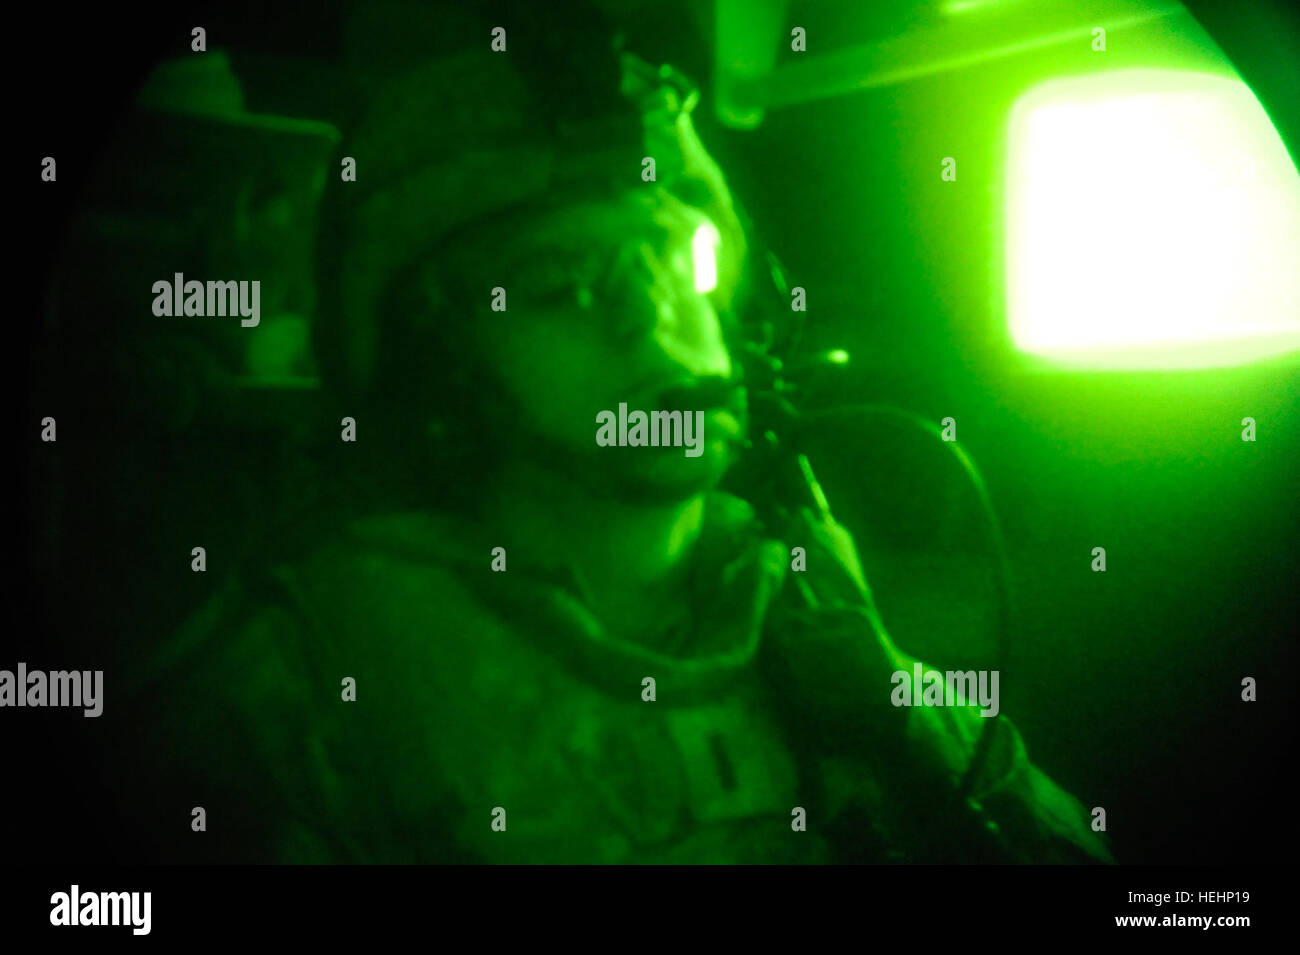 U.S. Army 1st Lt. Kenneth Jura of 1st Battalion, 27th Infantry Regiment, 25th Infantry Division, monitors radio Stock Photo